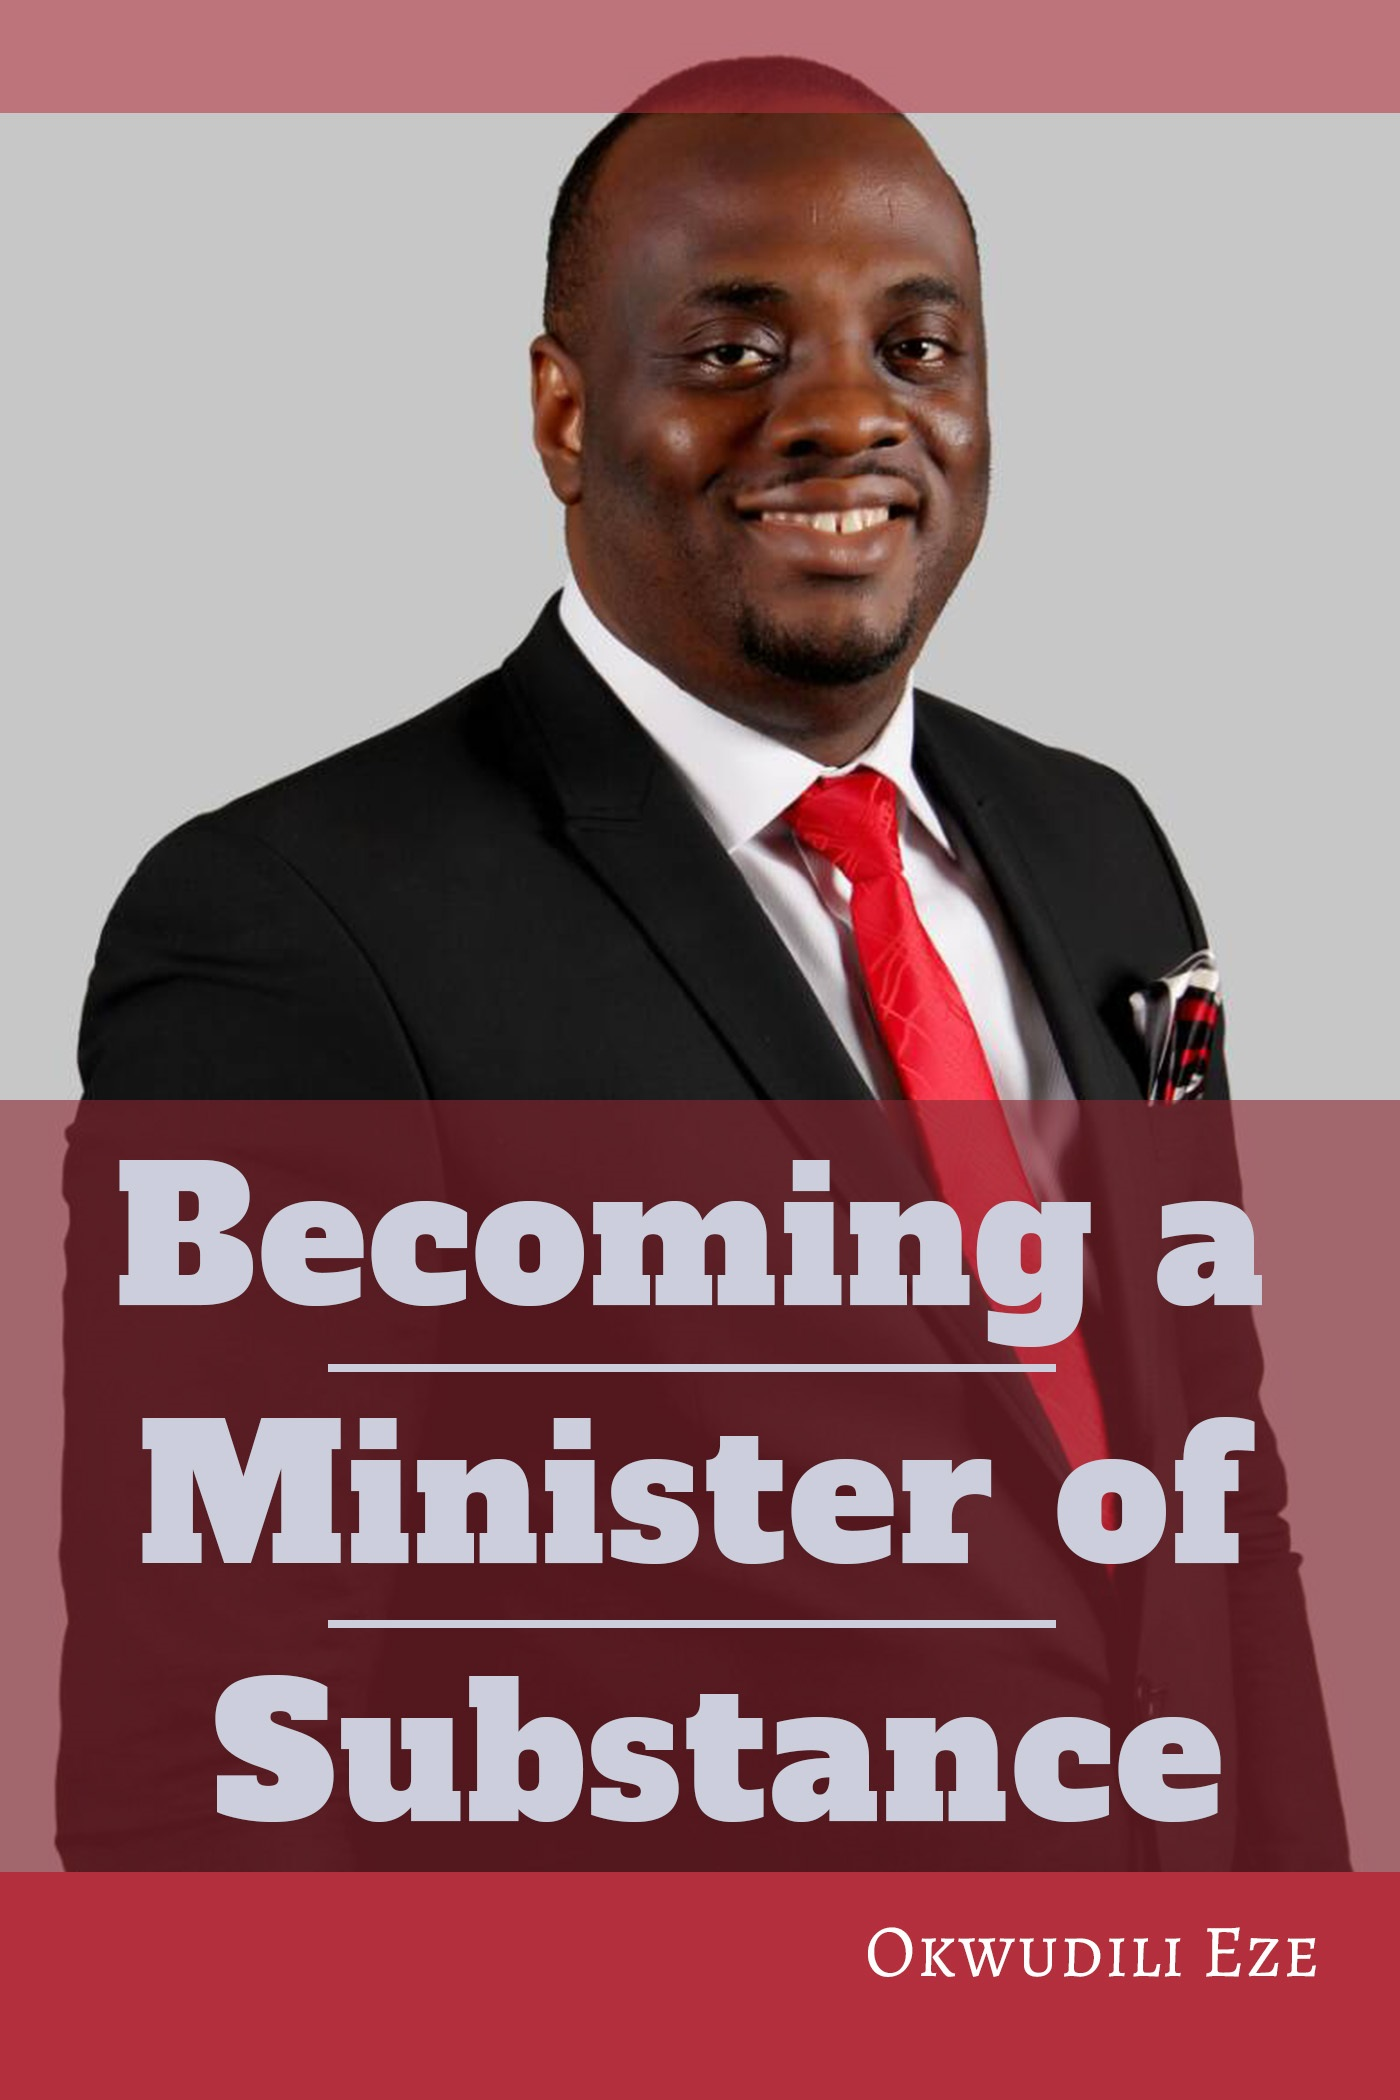 Becoming a Minister of Substance